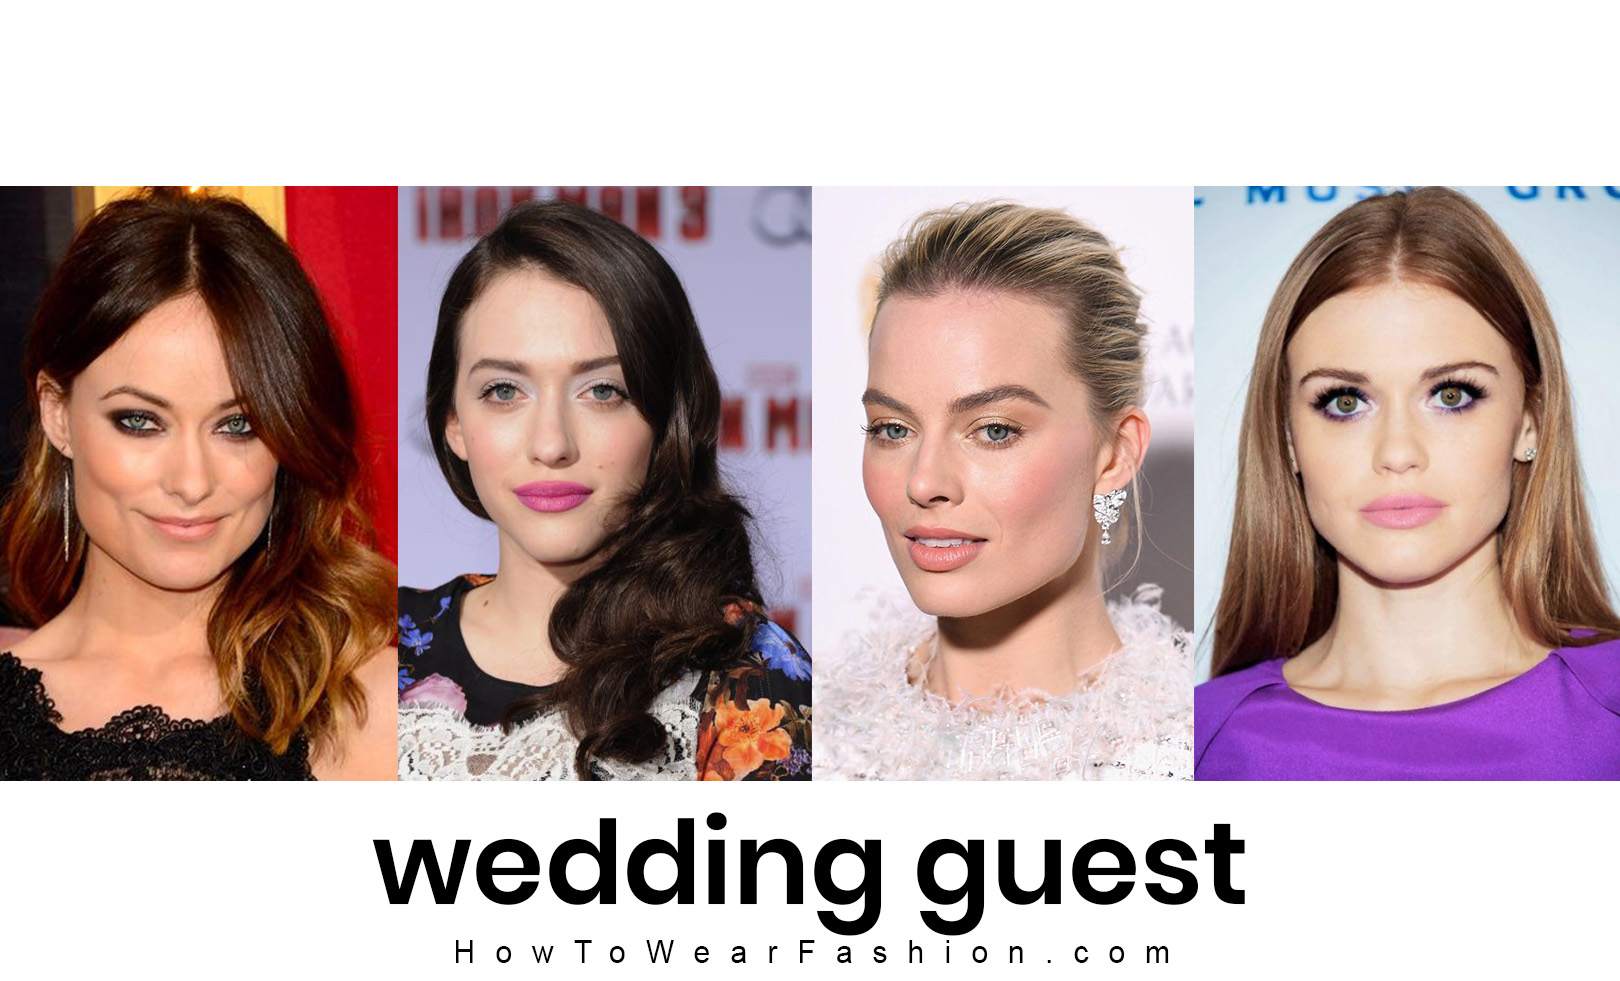 How to do your makeup for attending a wedding - wedding guest makeup ideas!